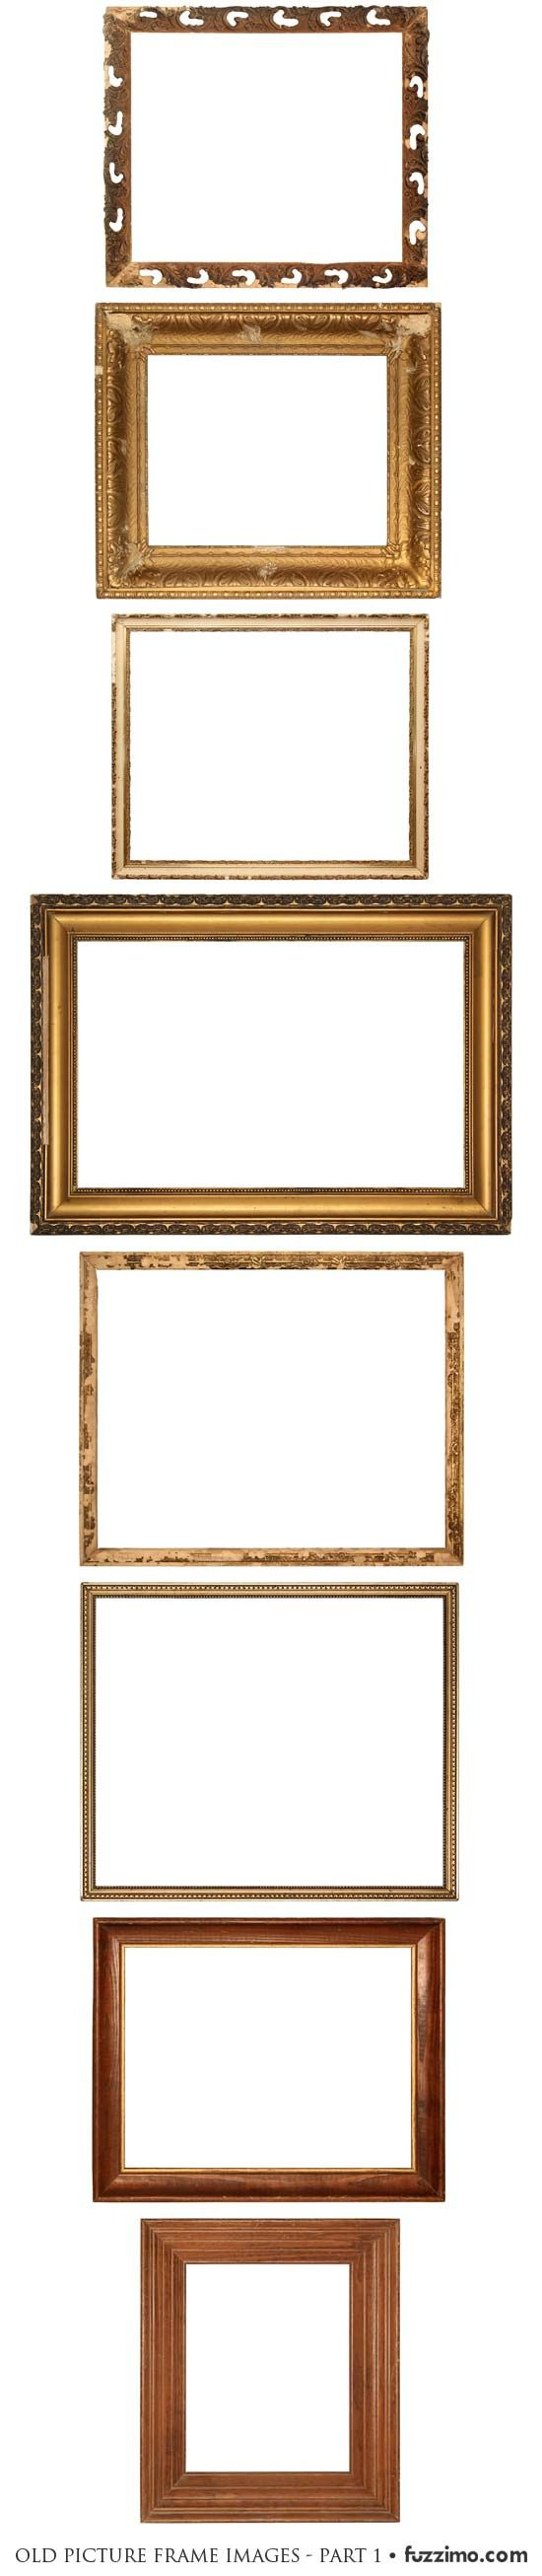 Best 25 old picture frames ideas on pinterest picture for Vintage picture frame ideas